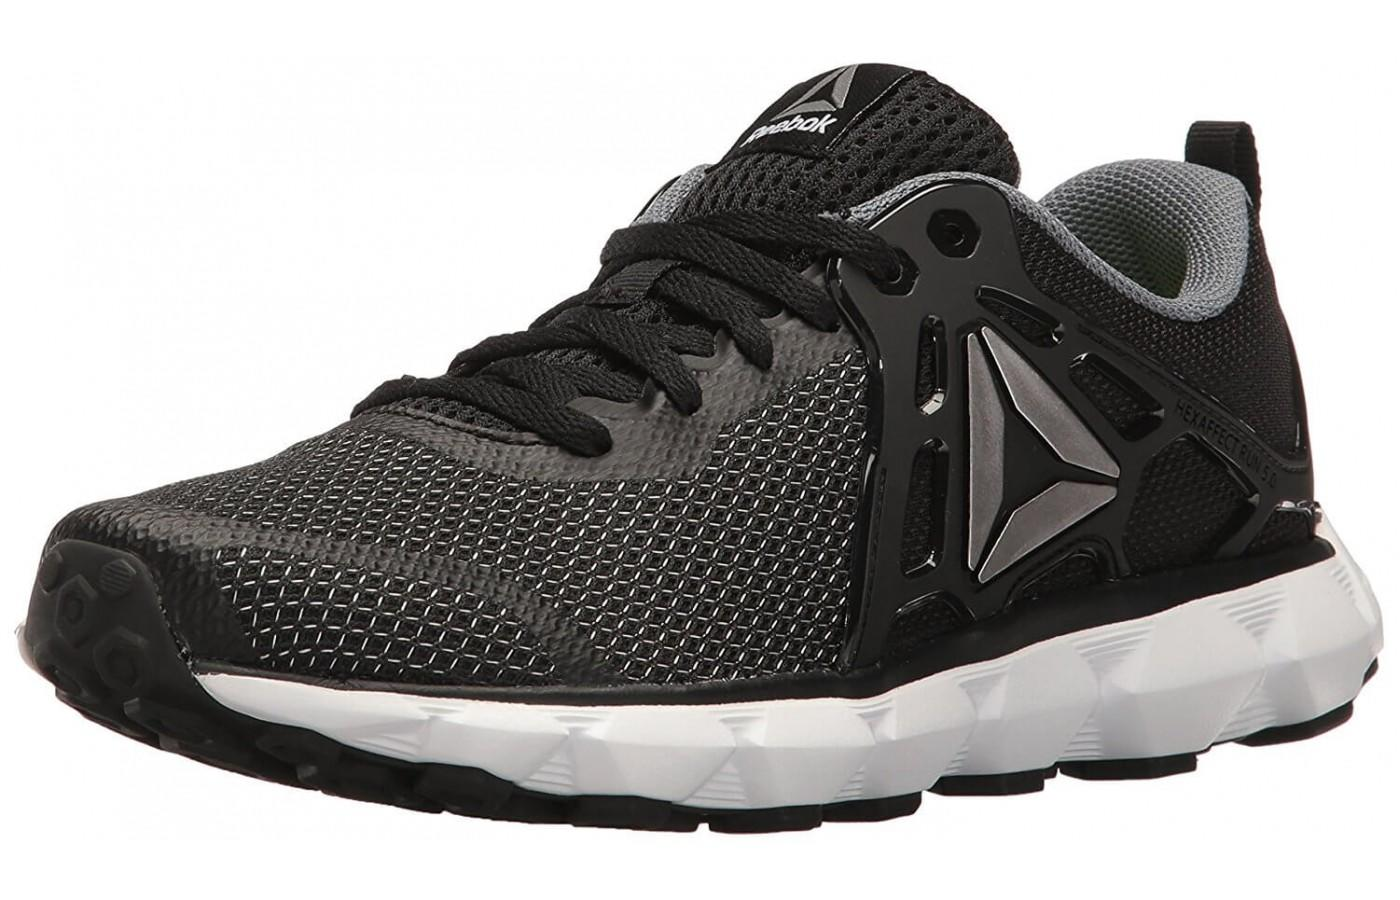 The Reebok Hexaffect Run 5.0 is a comfortable, cushioned shoe ...